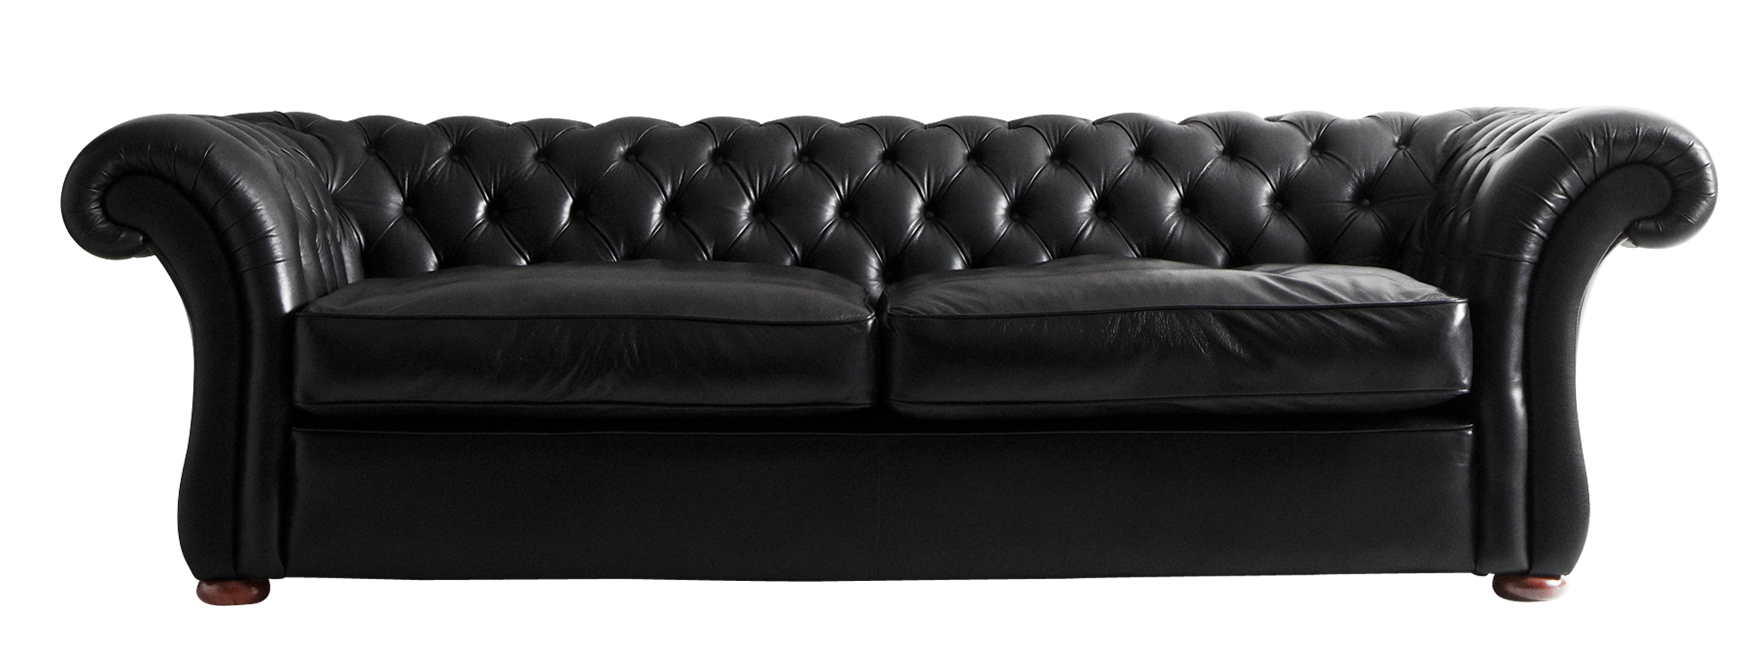 Couch png. Sofa image purepng free